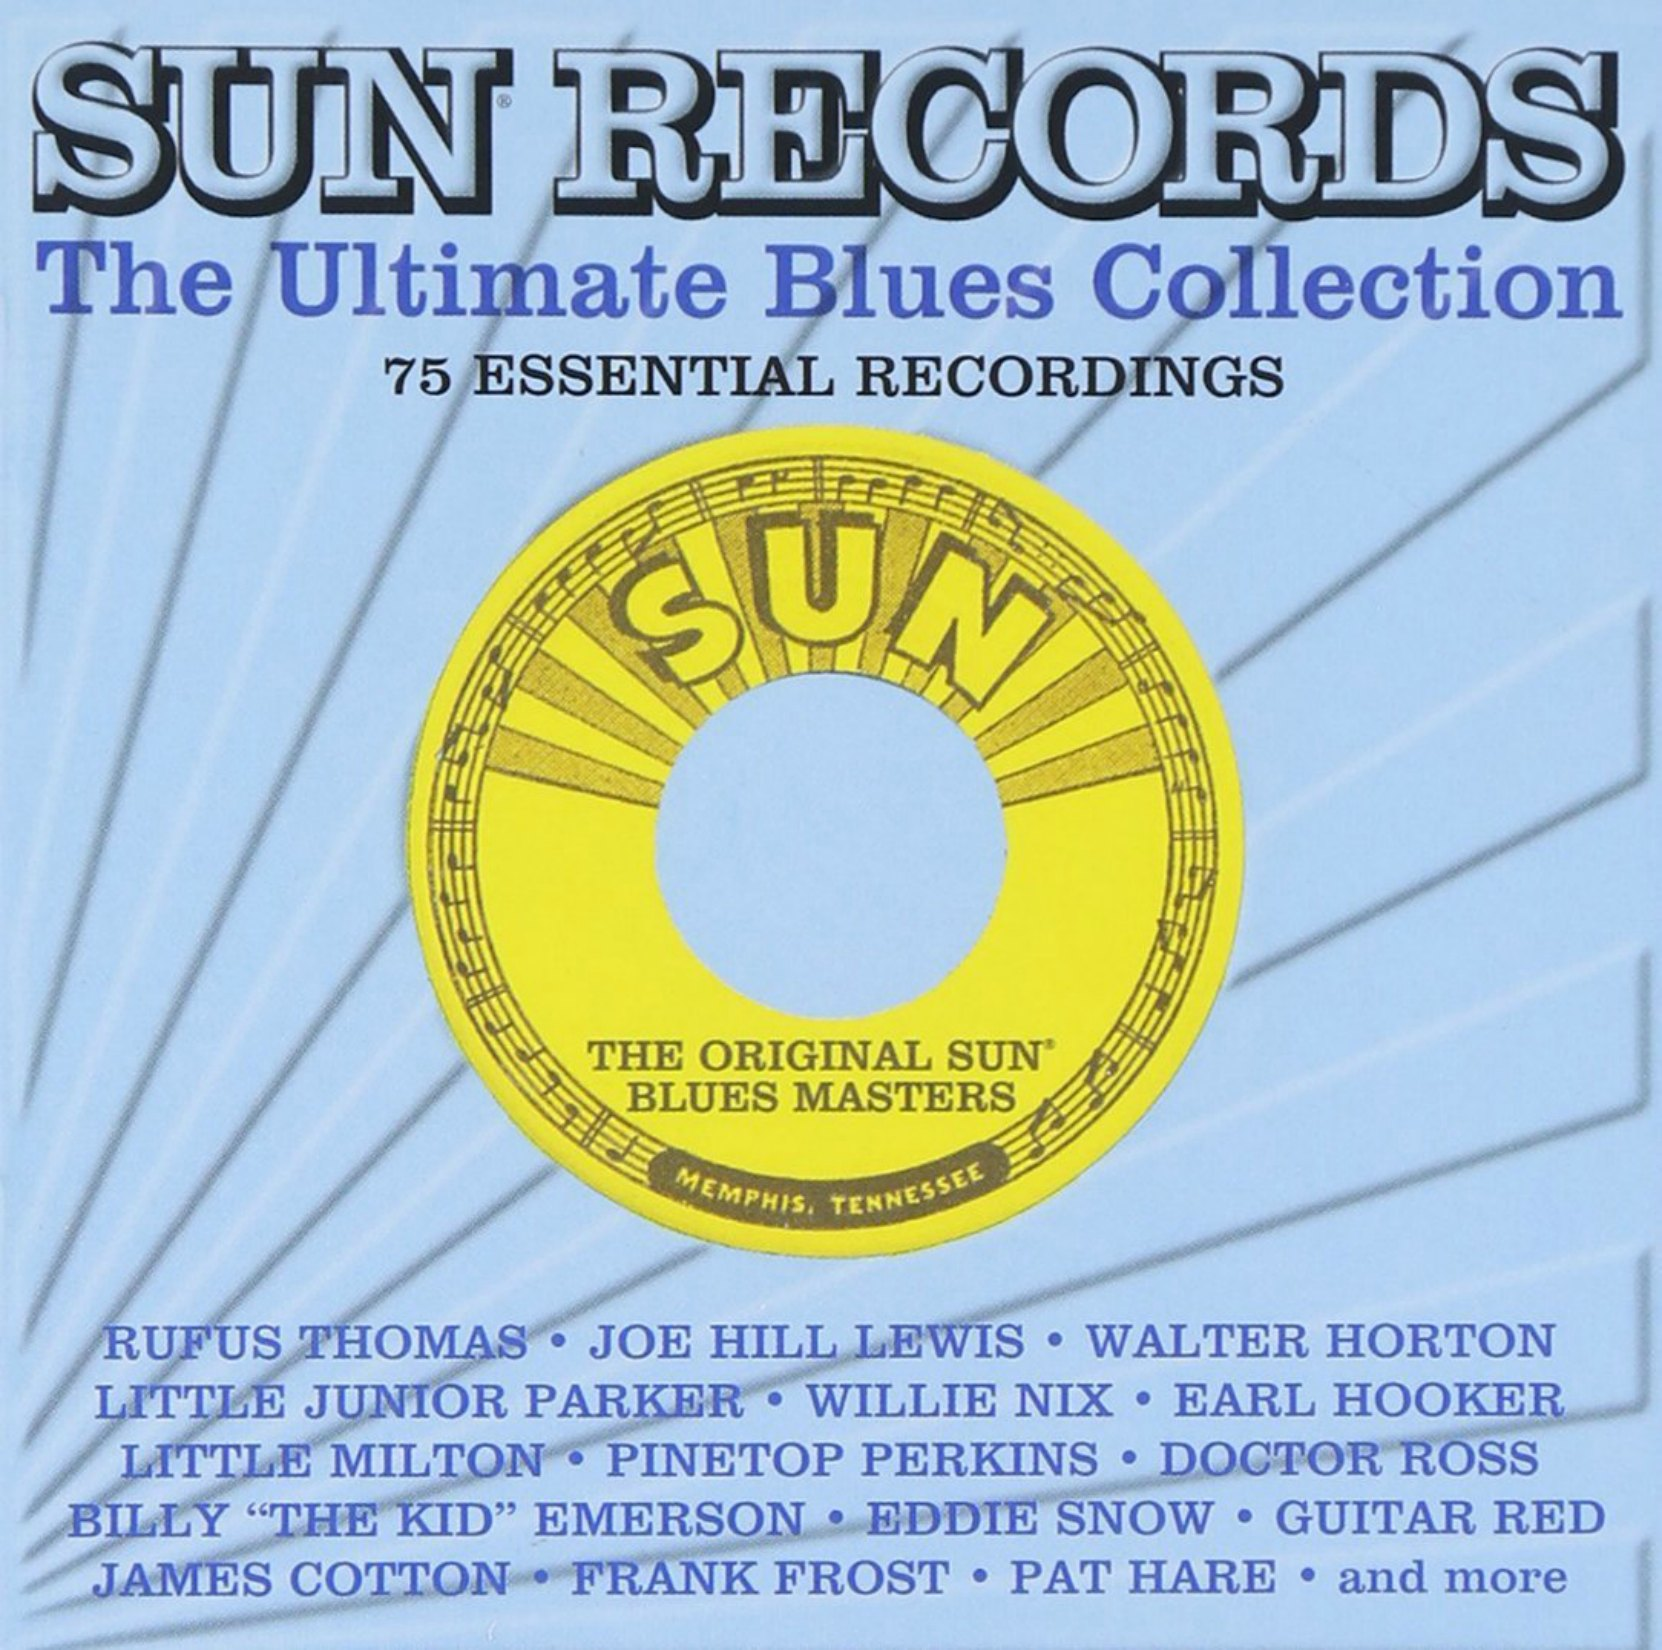 CD cover, Sun Records - The Ultimate Blues Collection, a 3 CD set of Sun Records blues recordings.